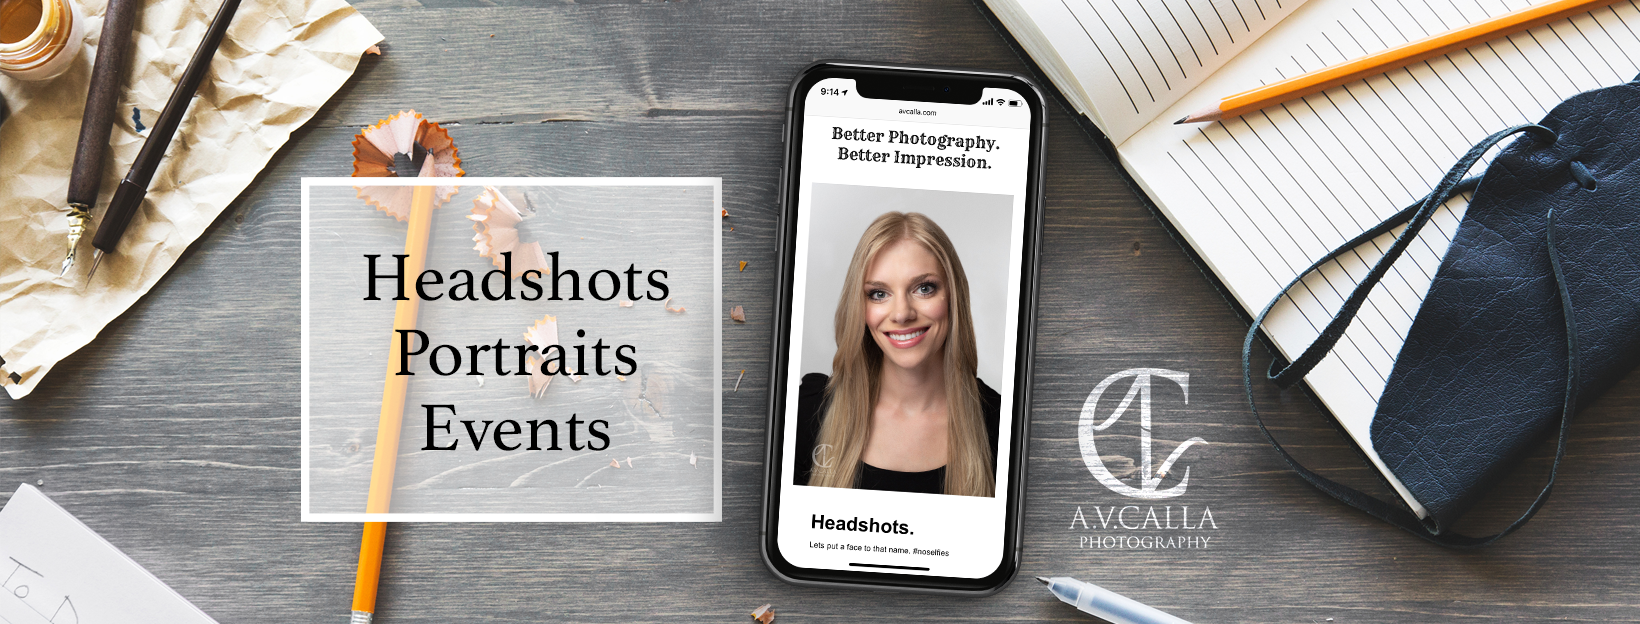 scottsdale arizona headshot photographer